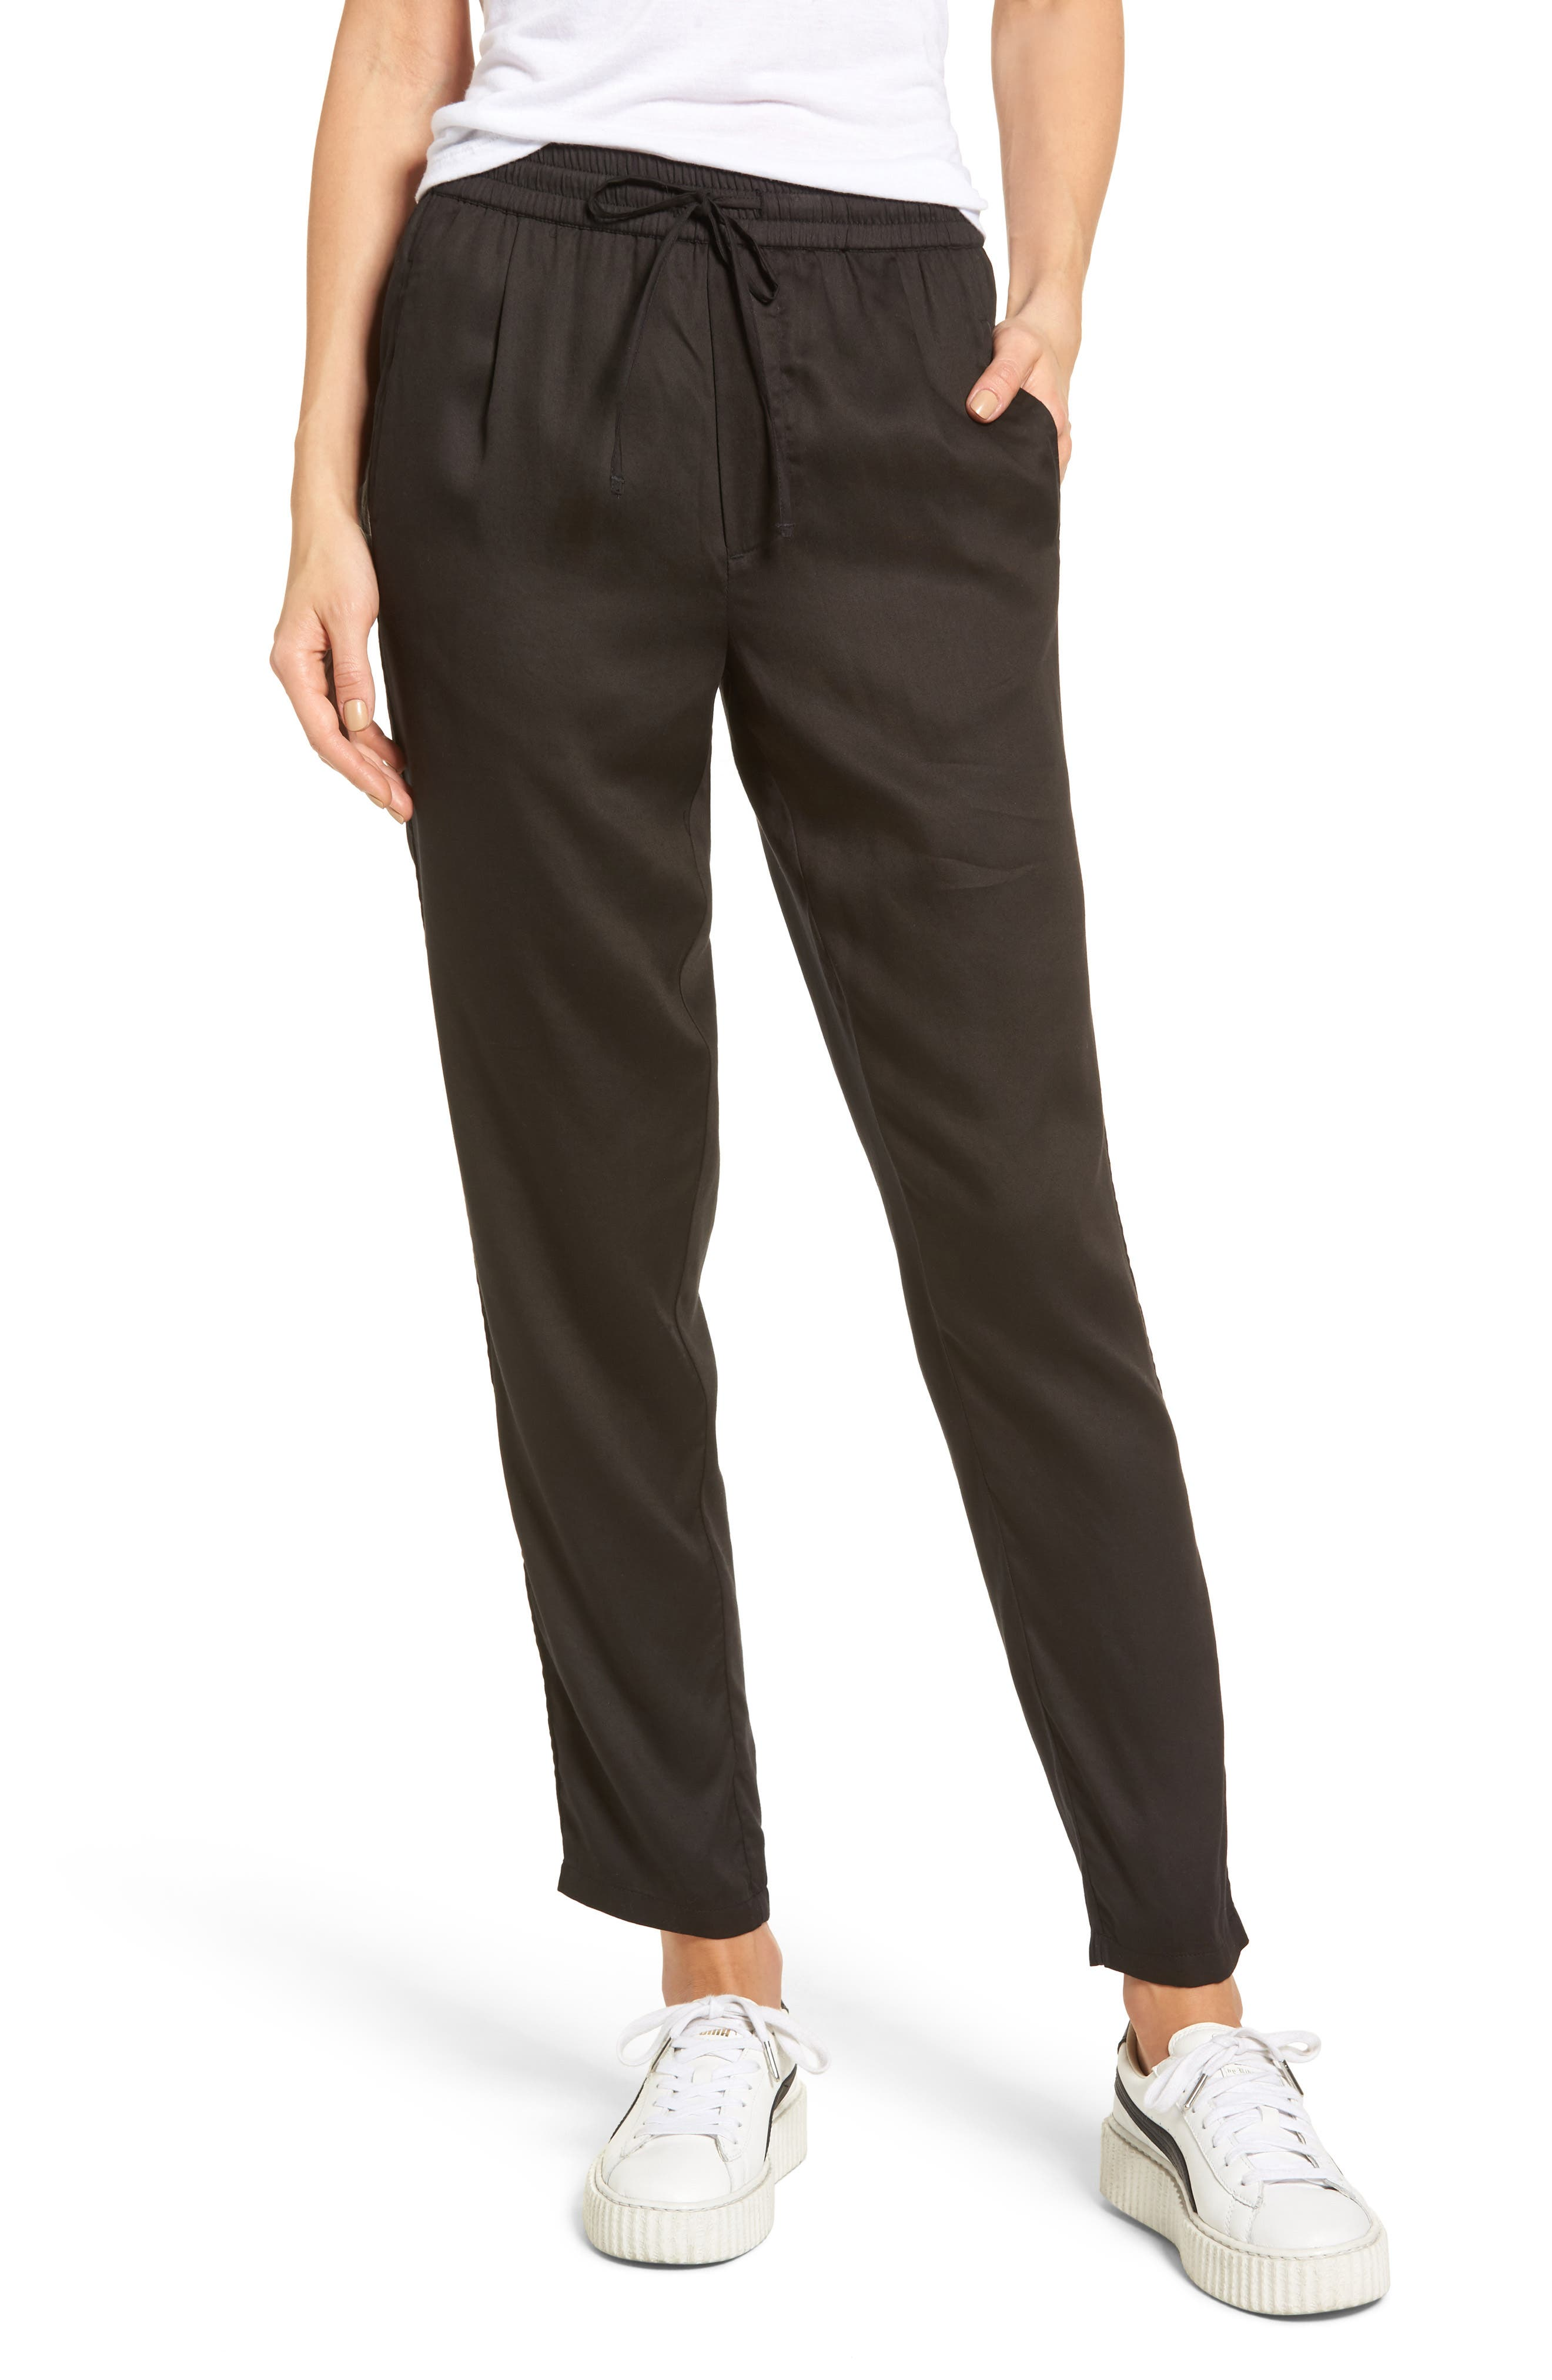 Savoy Satin Pants,                             Main thumbnail 1, color,                             001